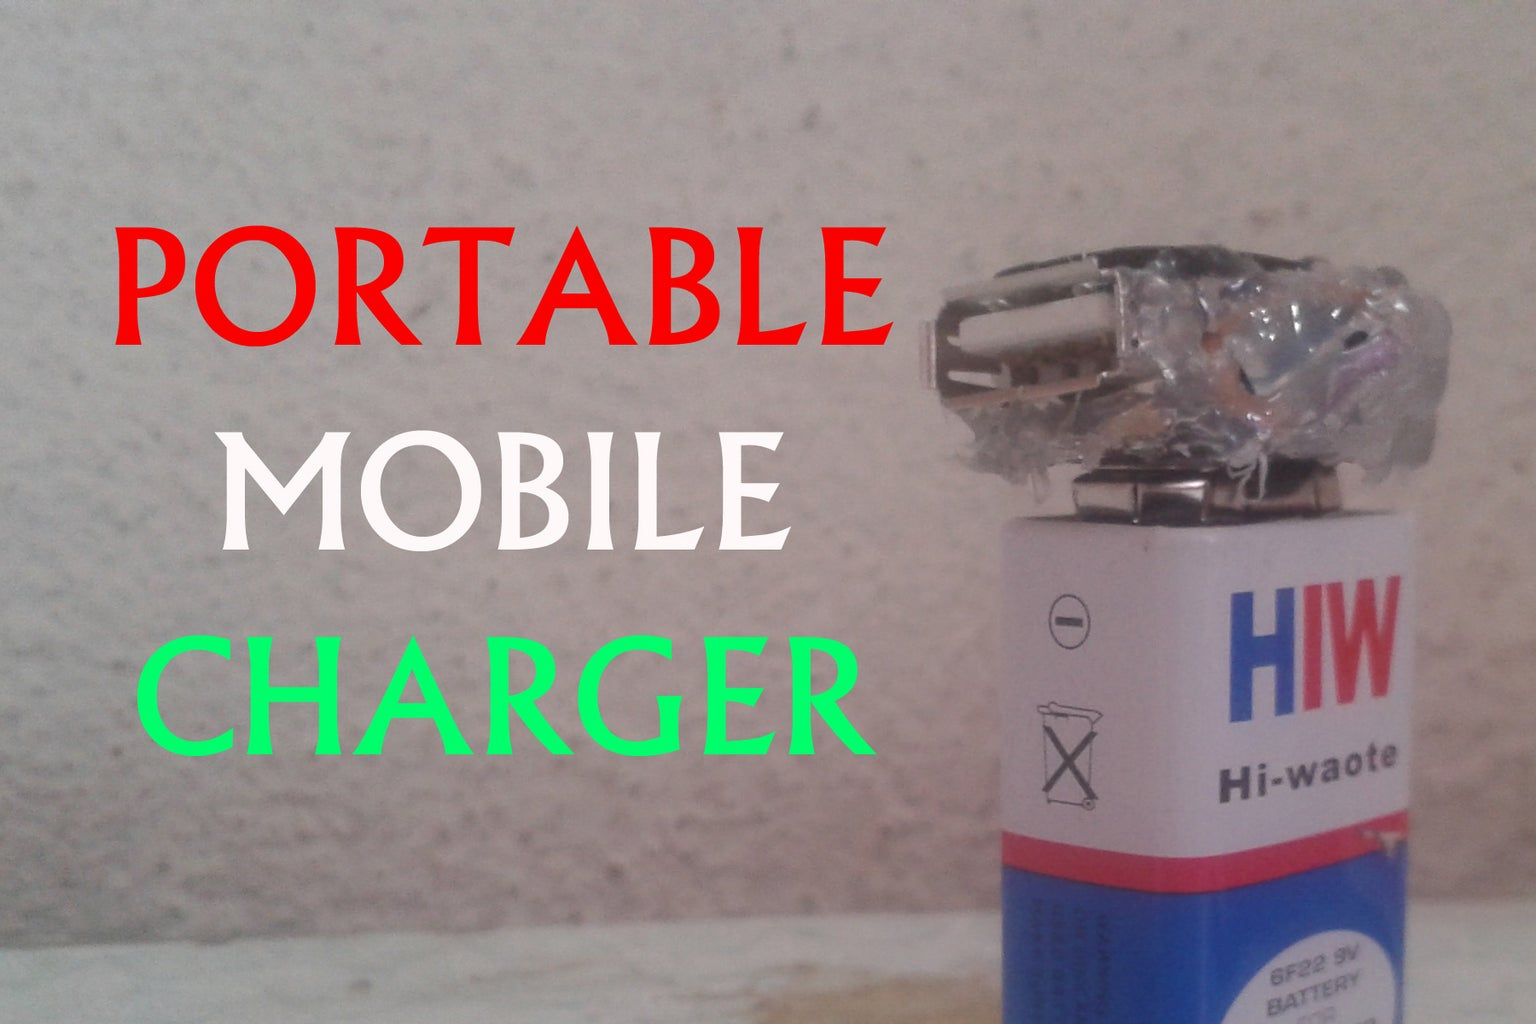 Portable USB Charger - Simple Power Bank